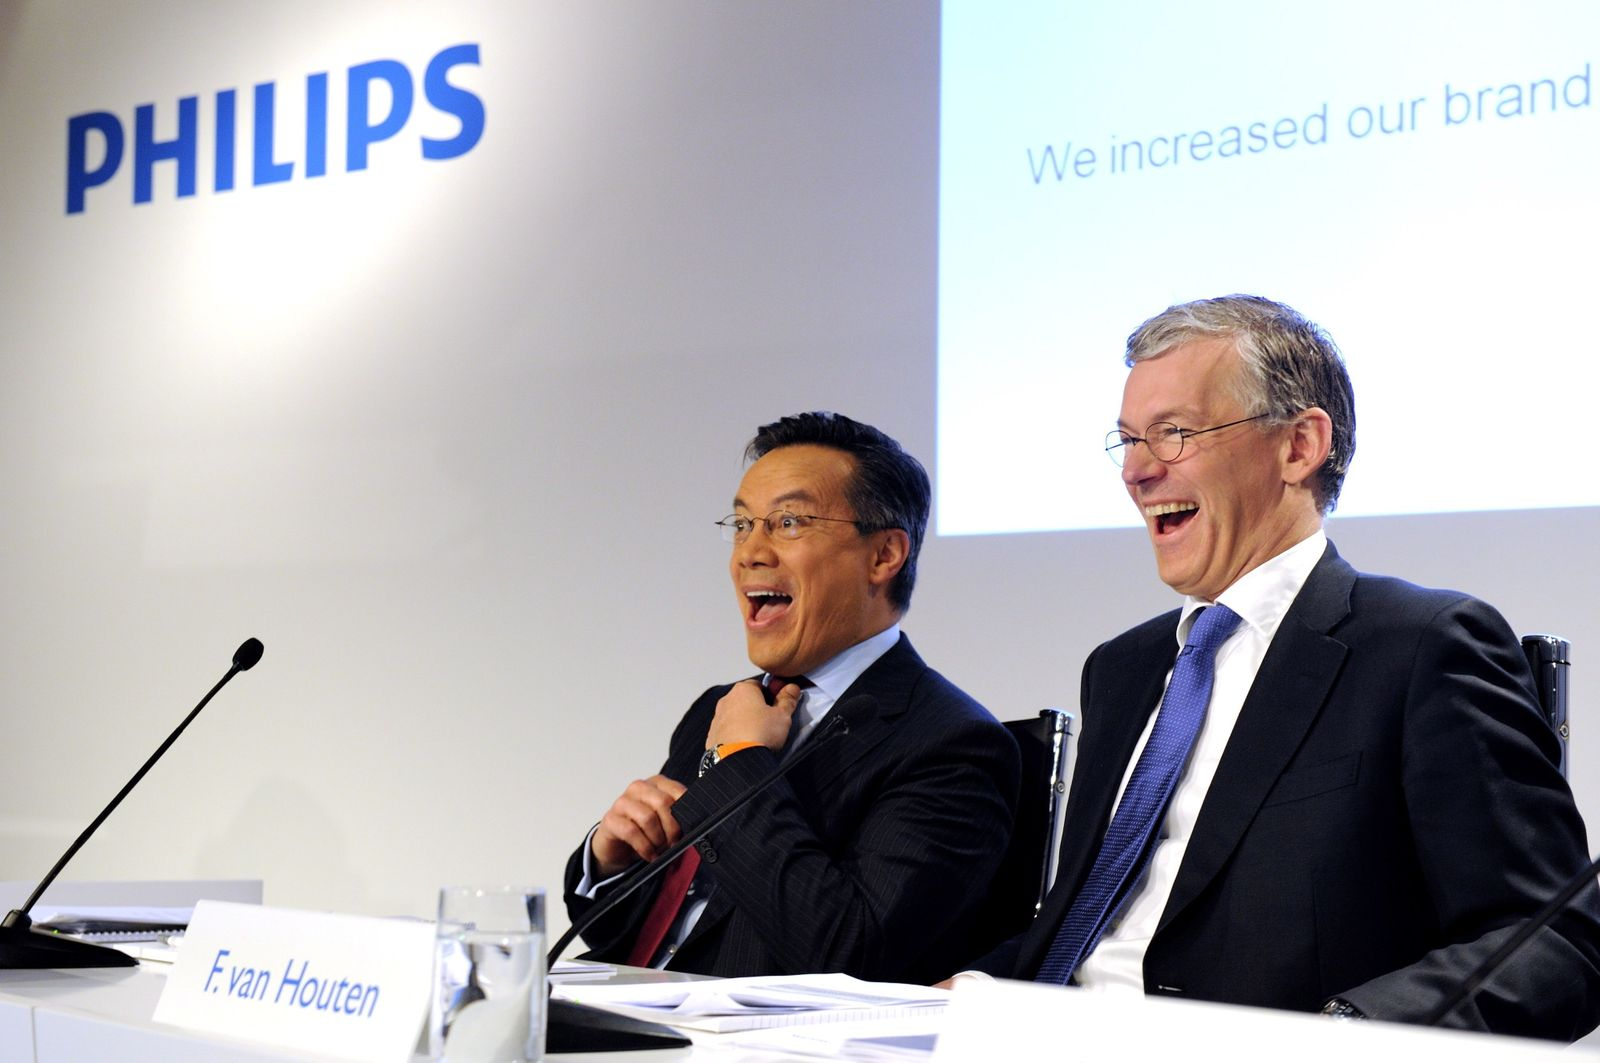 Philips annual conference in Amsterdam